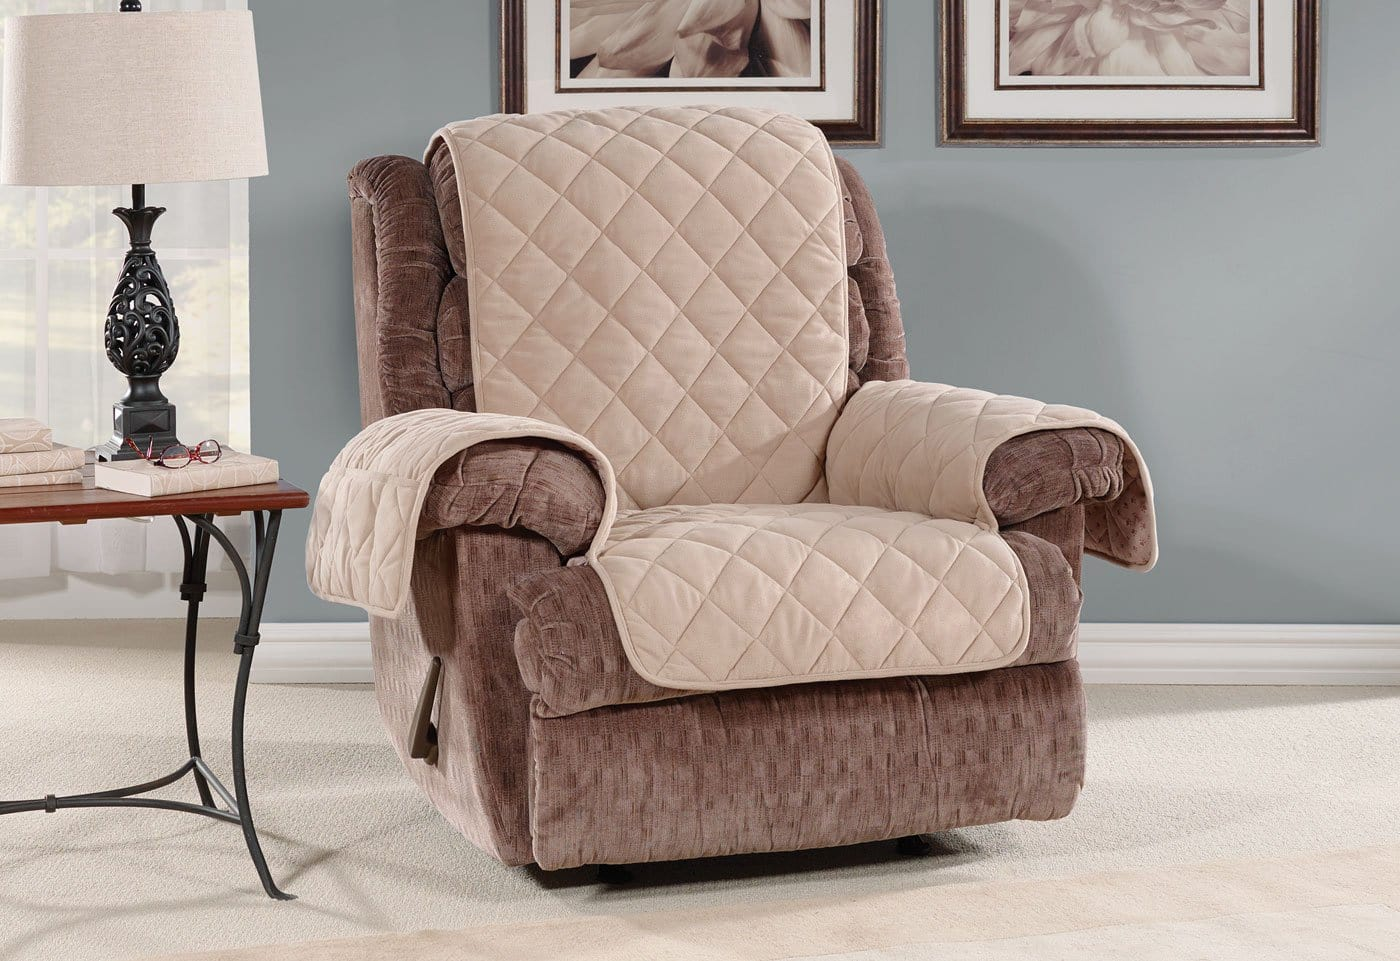 Oversized Microfleece Recliner Furniture Cover Pet Furniture Cover Machine Washable - Recliner / Taupe